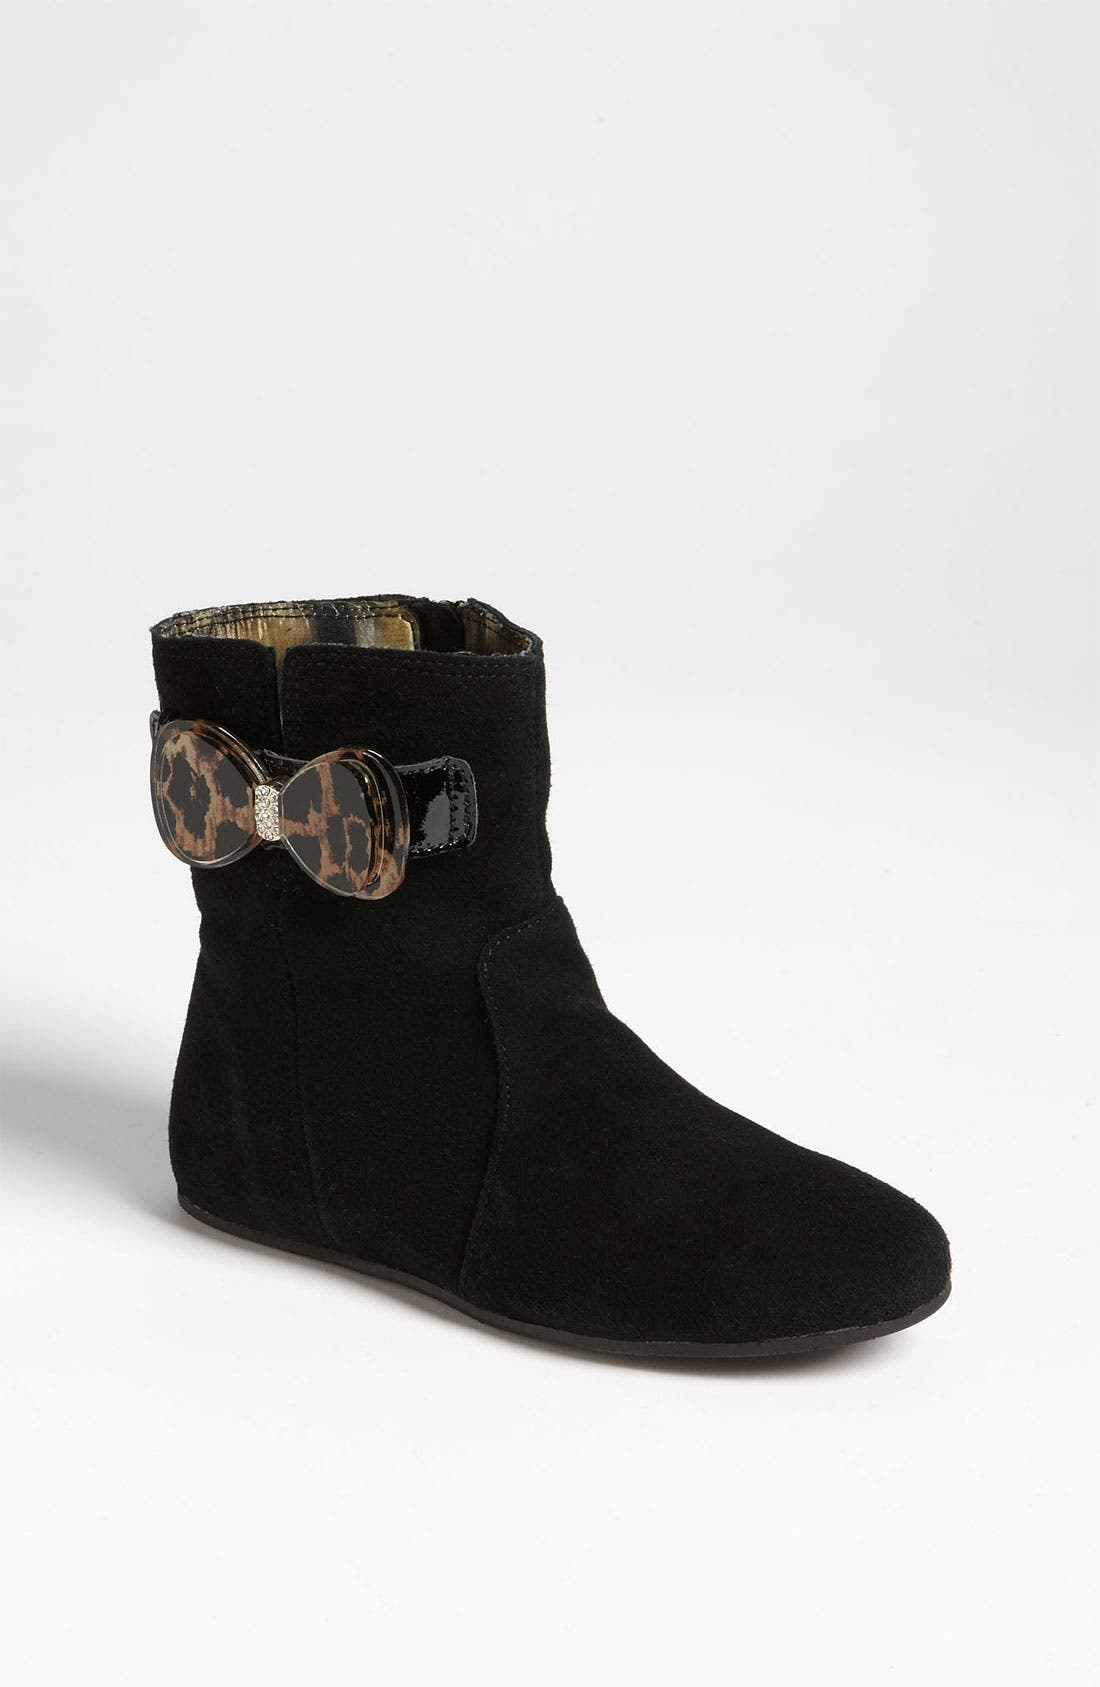 Main Image - Juicy Couture 'Rebbie' Boot (Toddler, Little Kid & Big Kid)